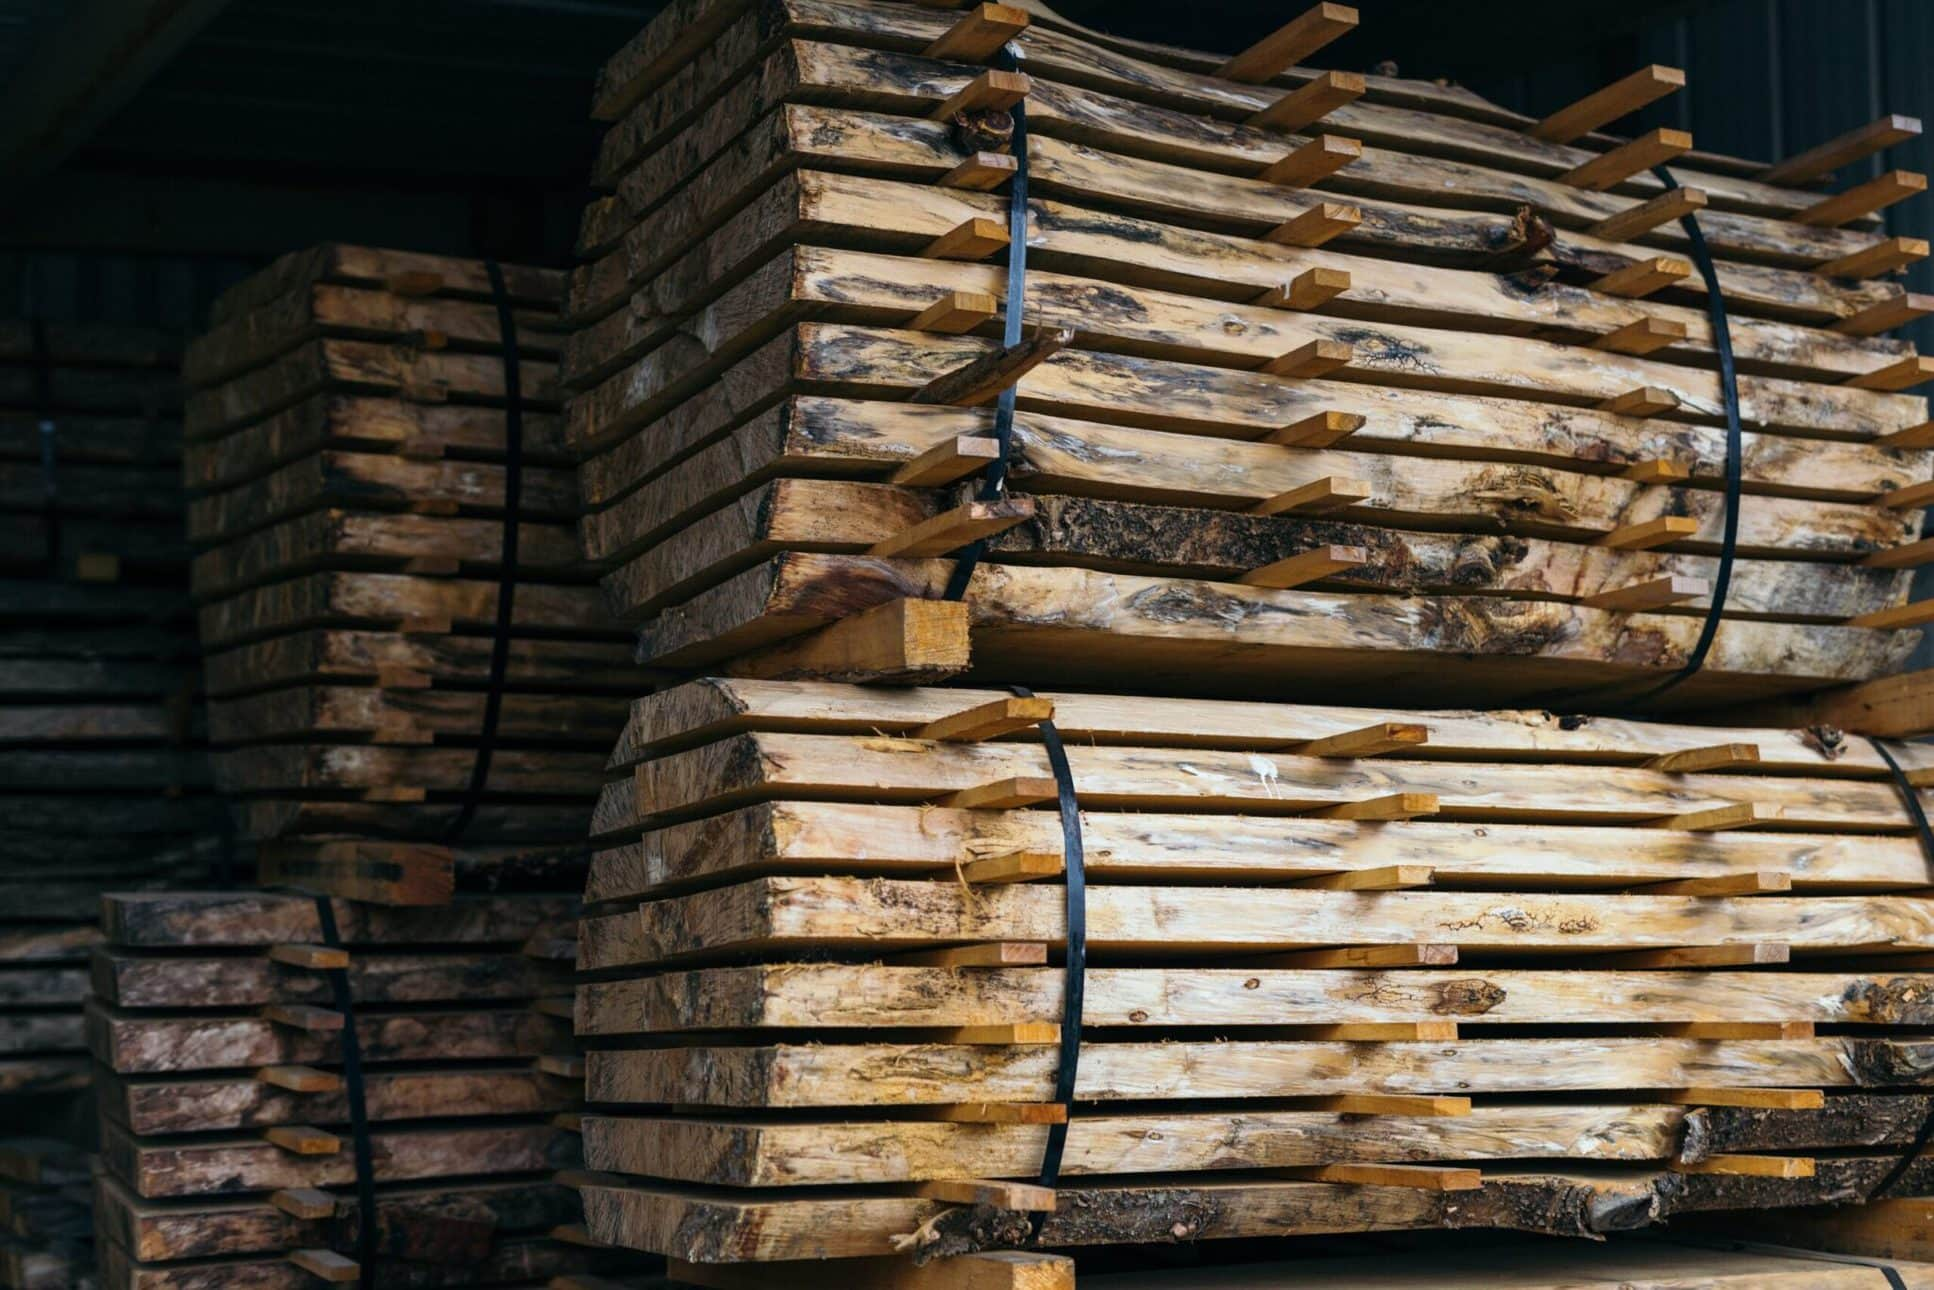 Stack of reclaimed wood timbers.